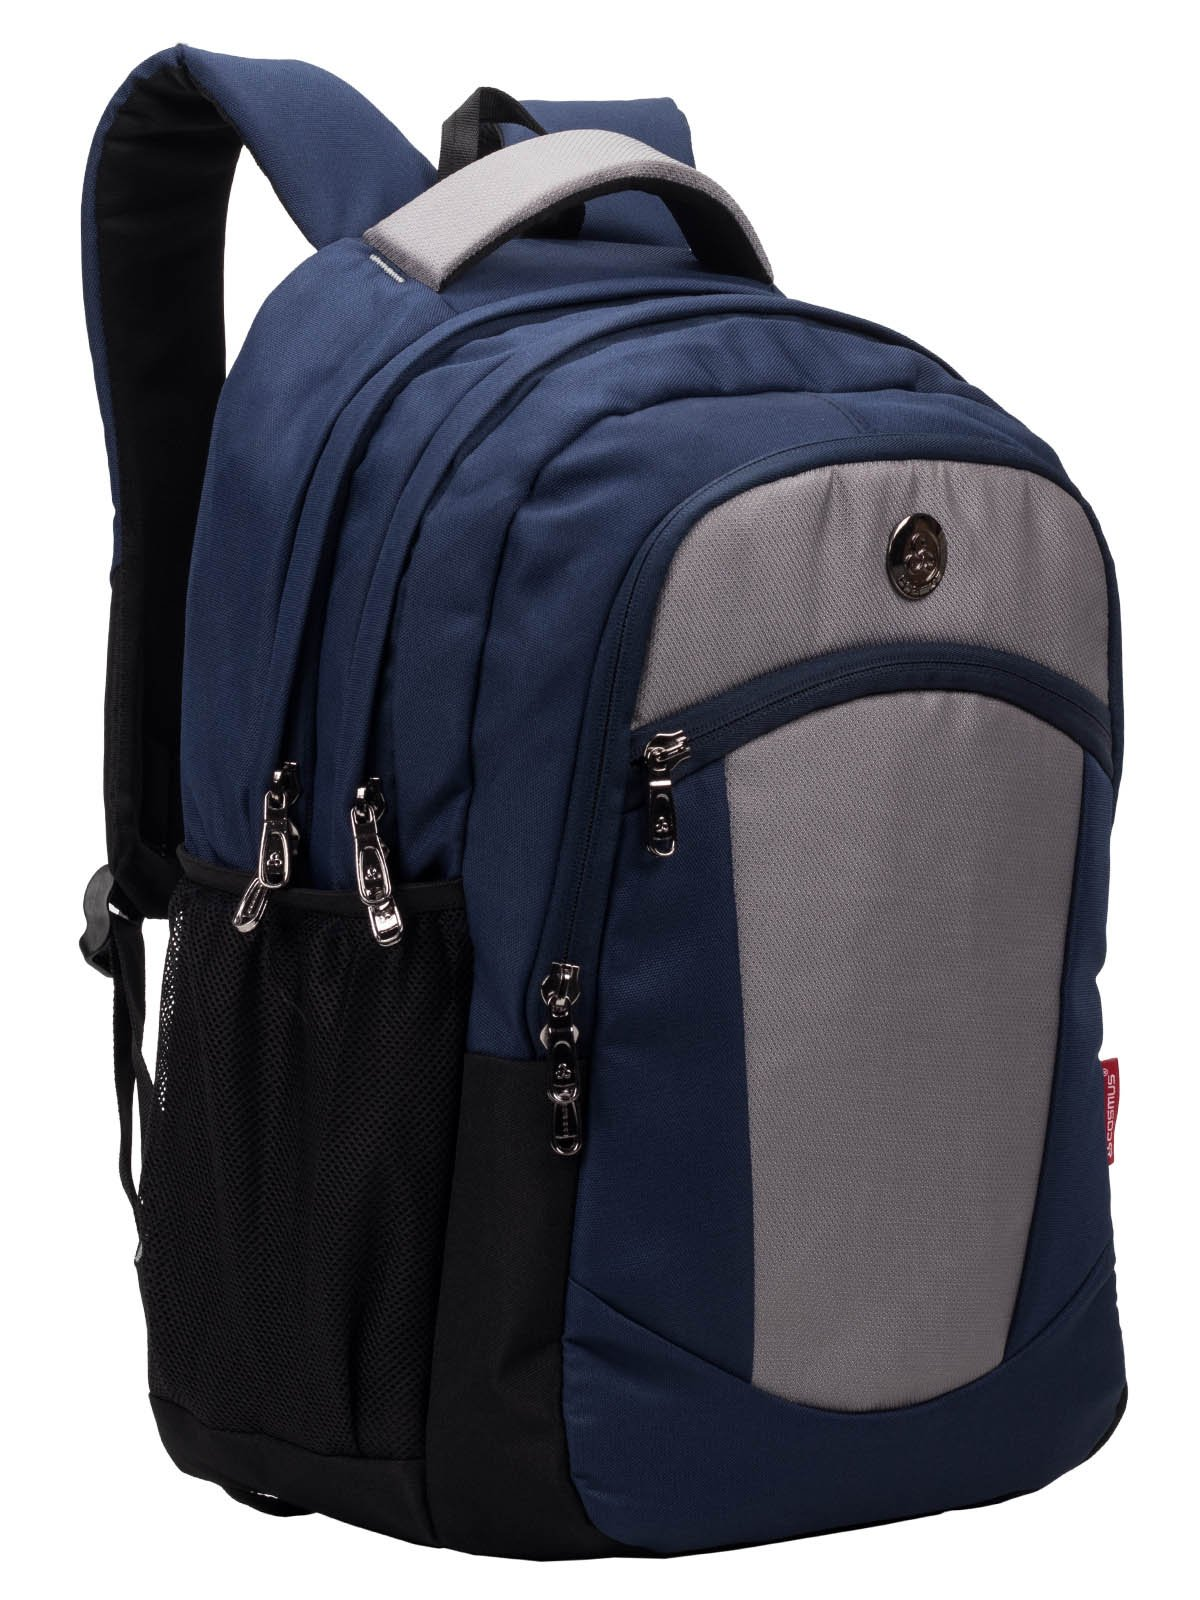 COSMUS Multipurpose Backpack Bag - Cosmus Madison Navy Blue 33L waterproof Bag With laptop compartment product image